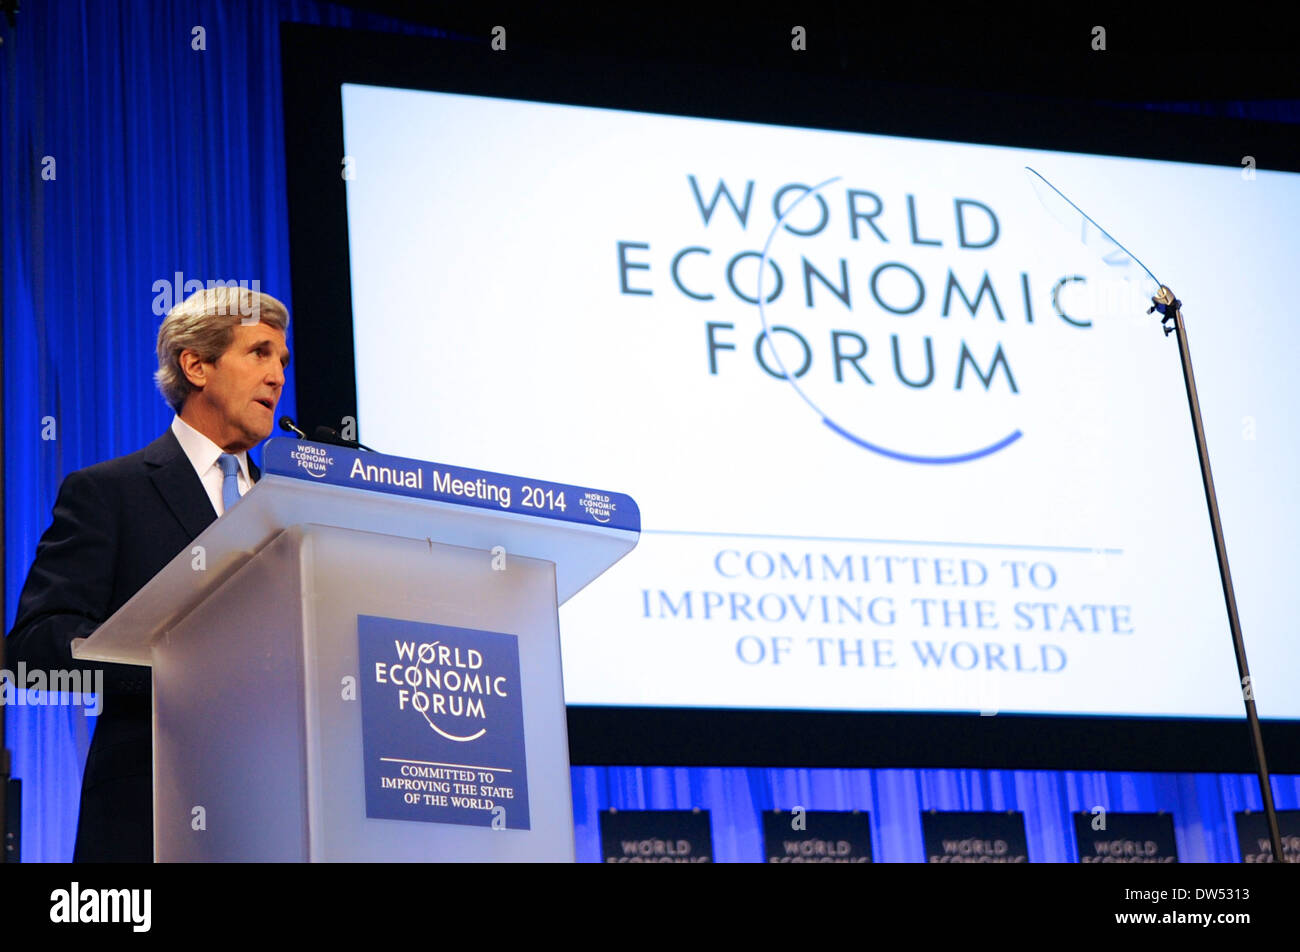 Secretary Kerry Delivers Keynote Address to Attendees at 2014 World Economic Forum - Stock Image